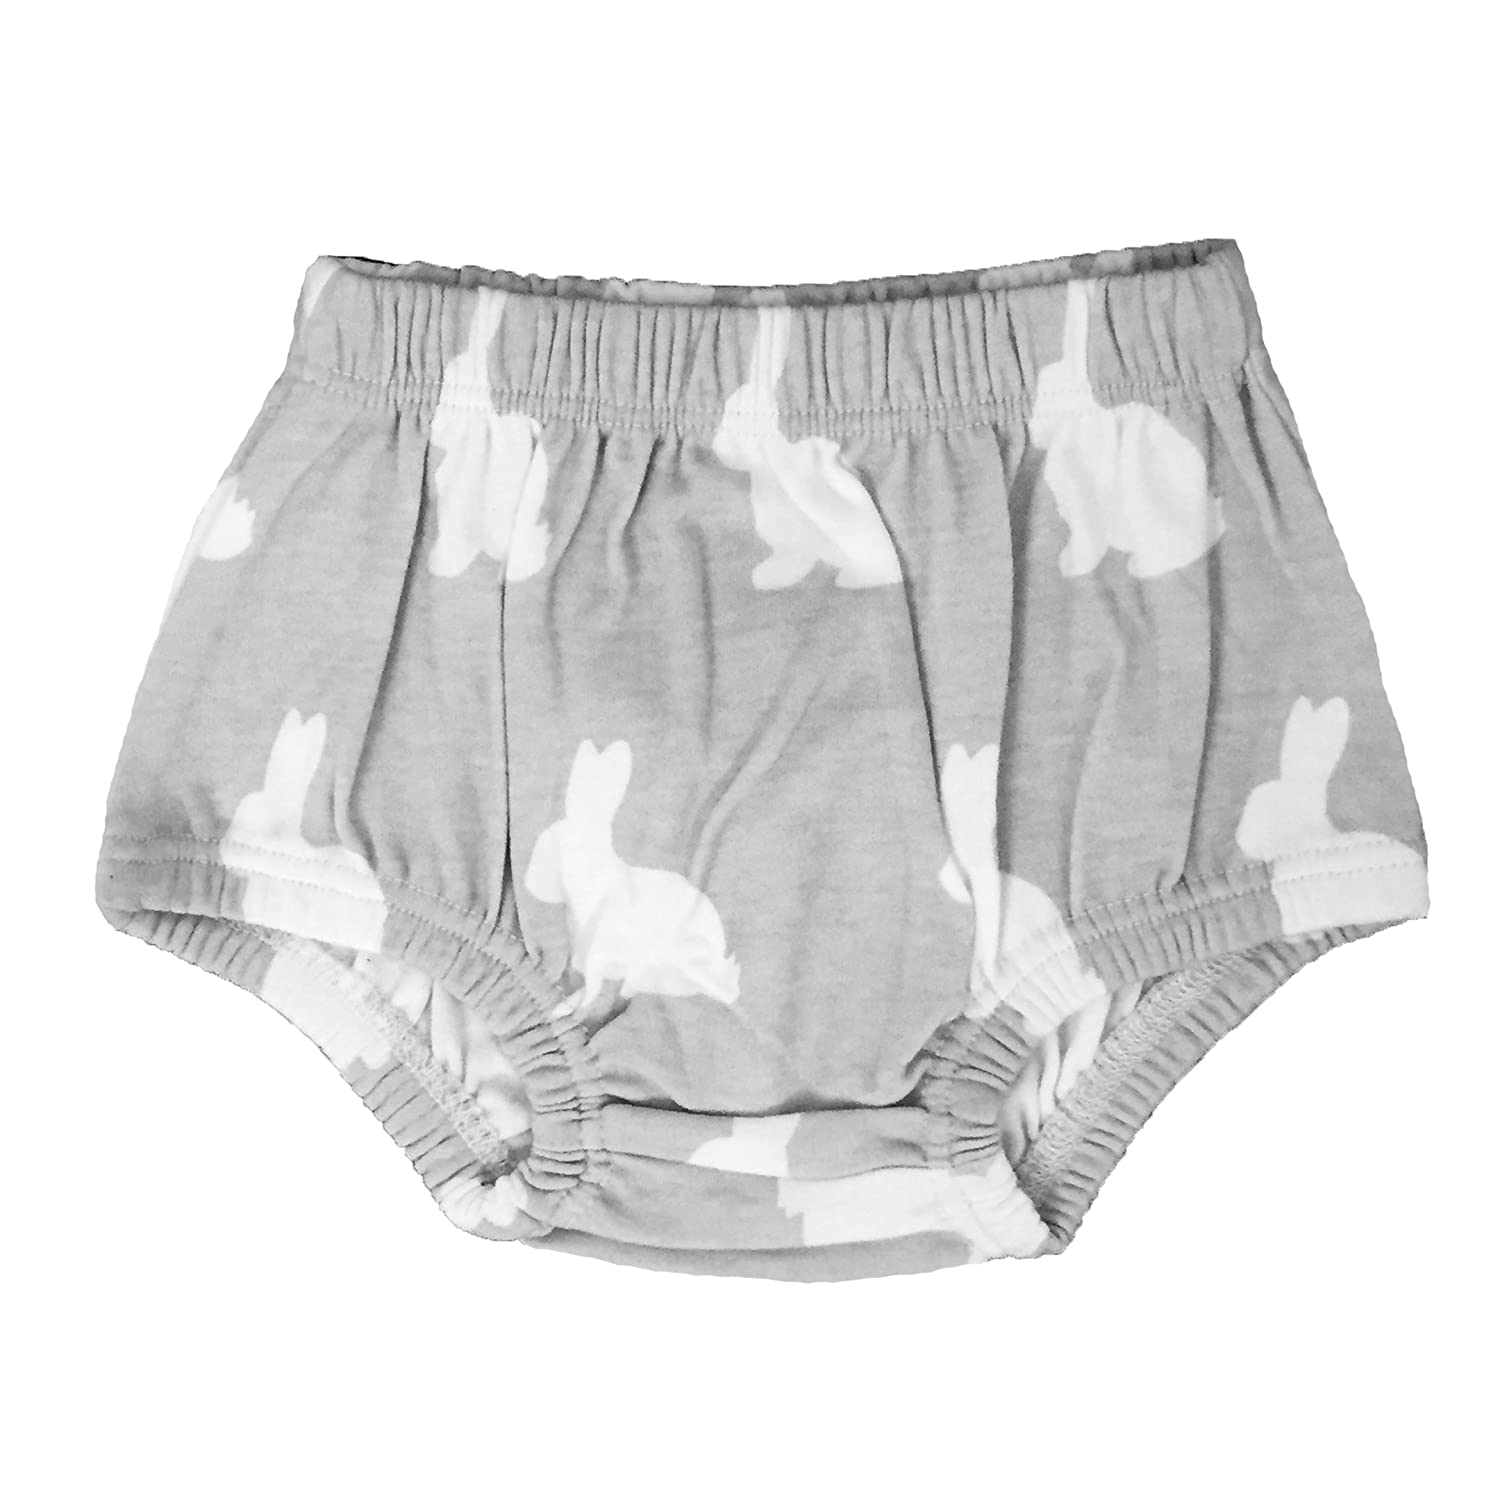 The Spunky Stork Grey & White Organic Cotton Bunnies Baby Bloomers